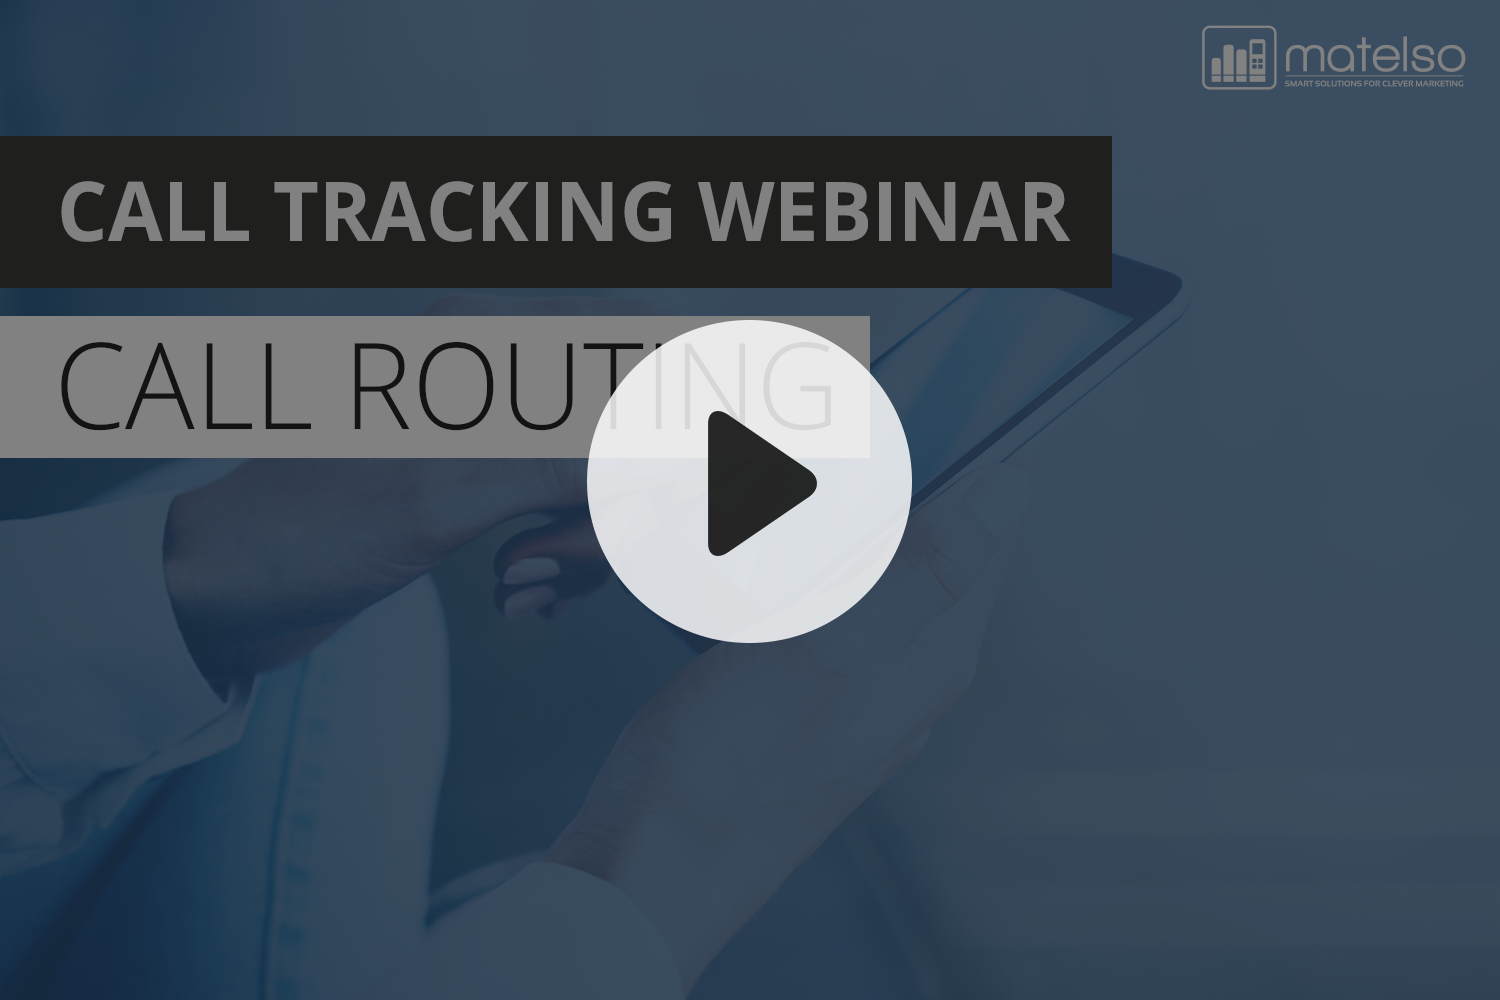 Vorschau Bilder Webinare- CALL ROUTING